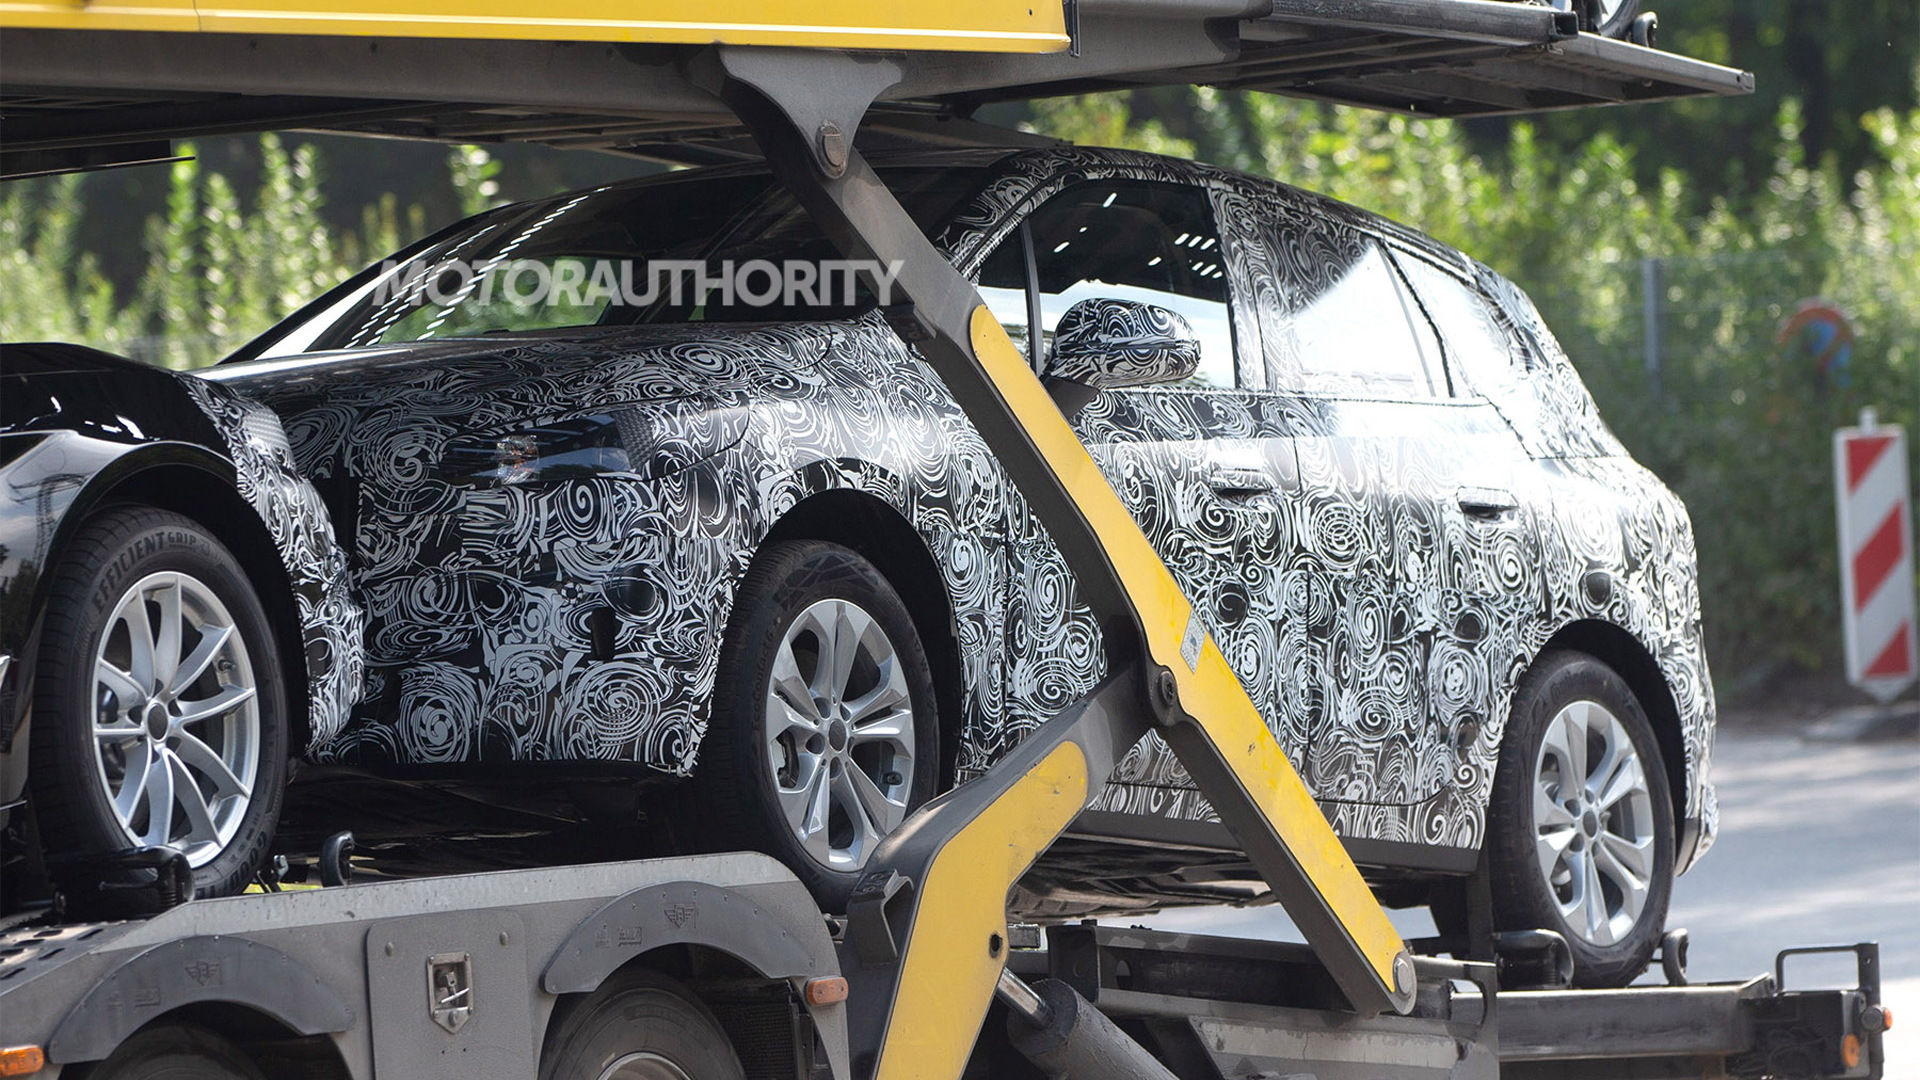 2021 BMW 2-Series Active Tourer spy shots - Photo credit: S. Baldauf/SB-Medien